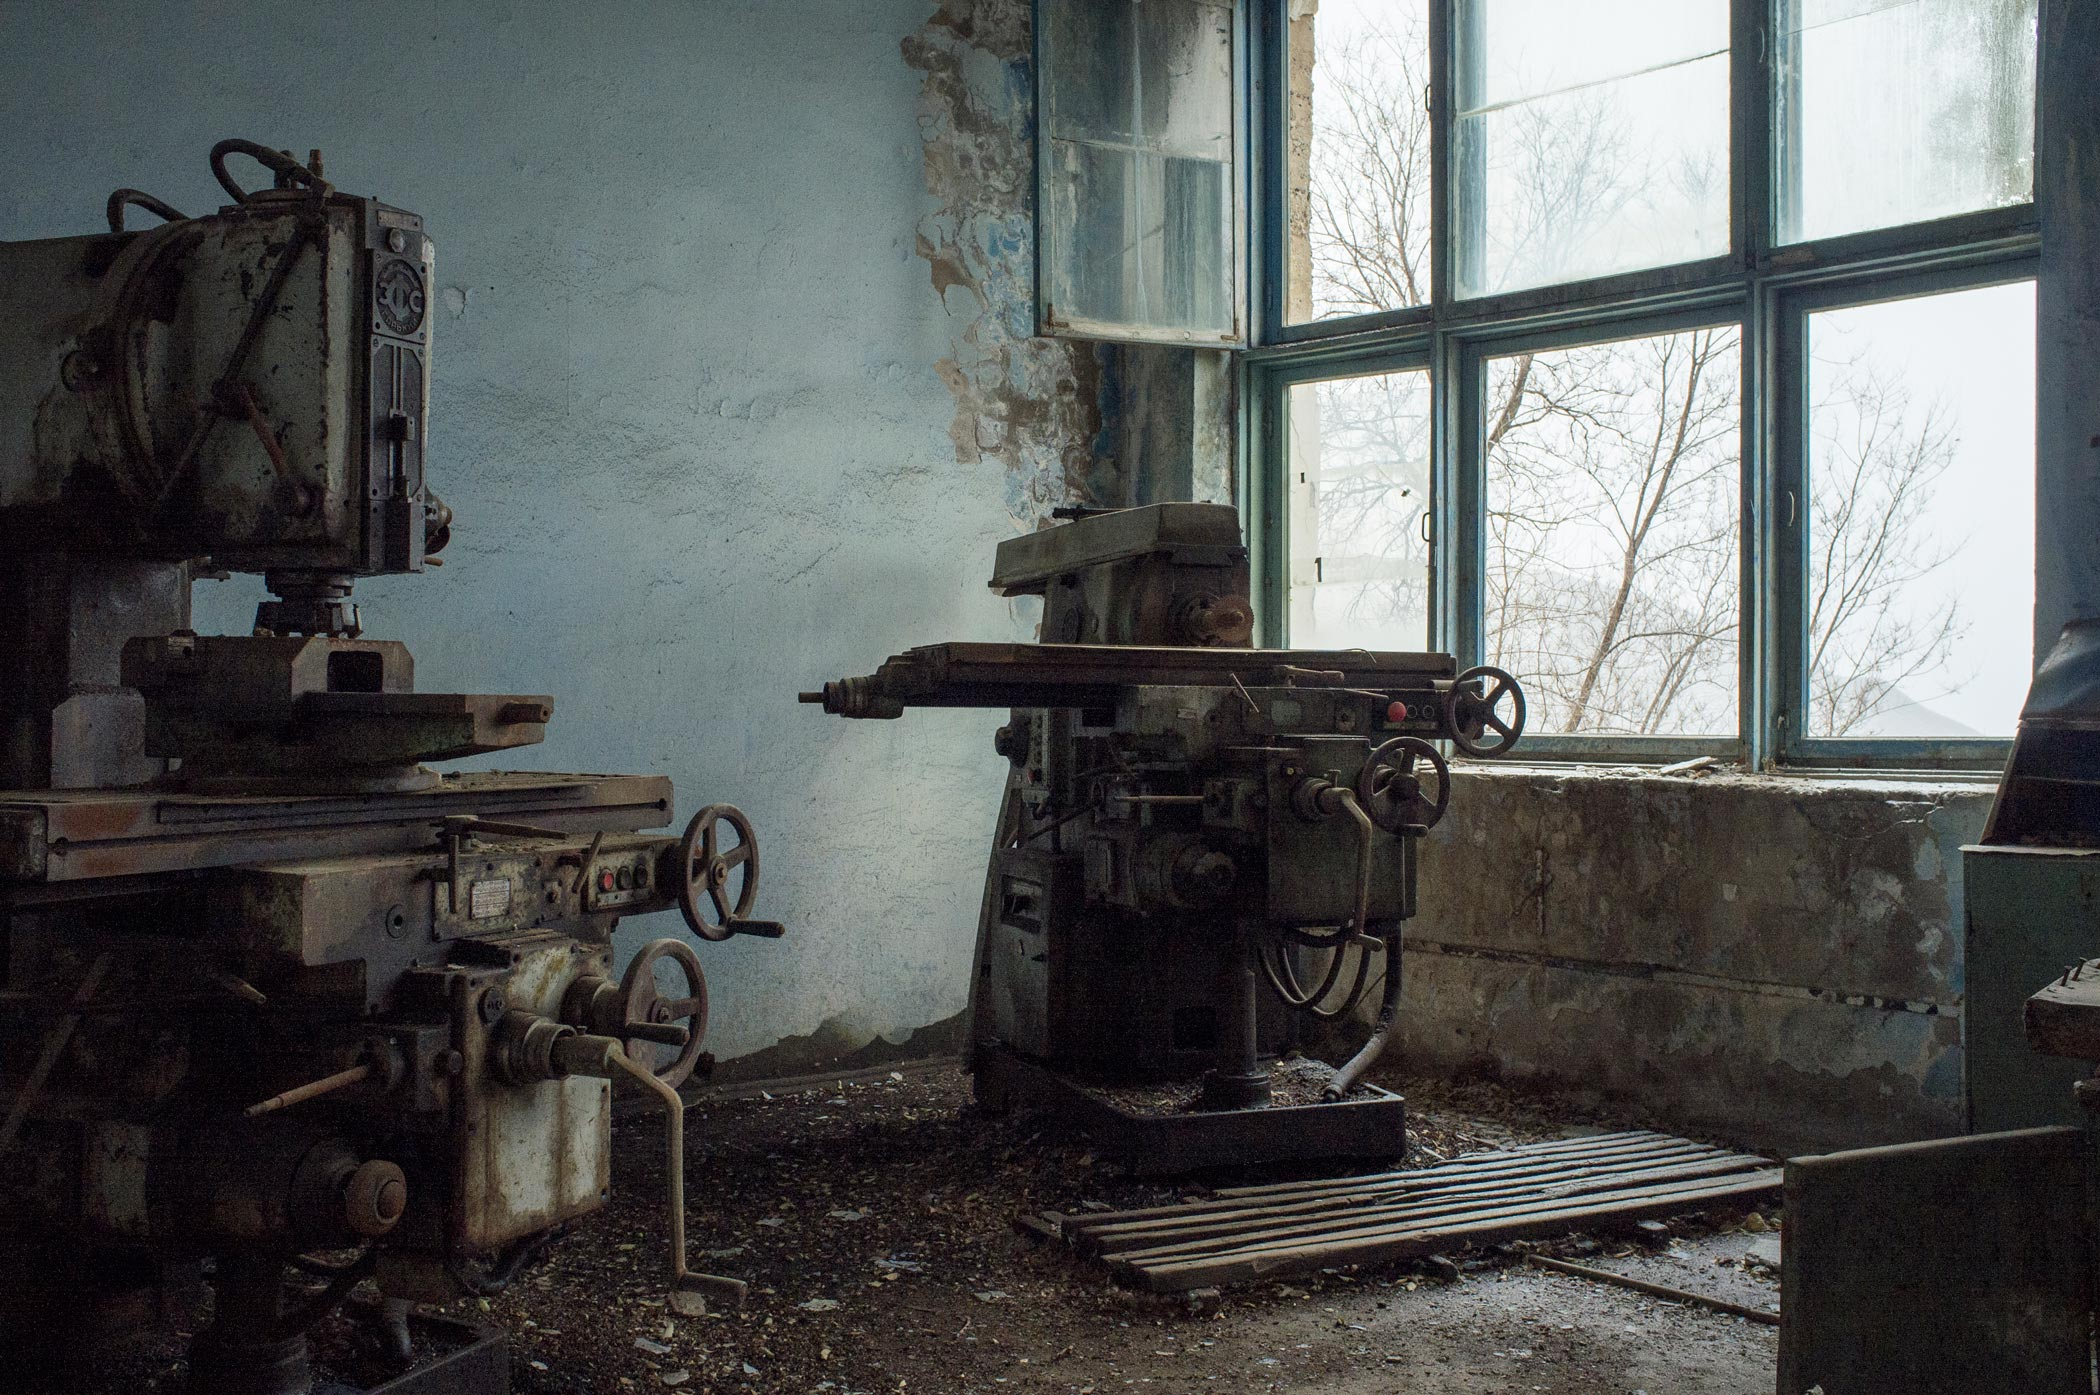 Machinery in a derelict pen factory in Min Kush, Kyrgyzstan